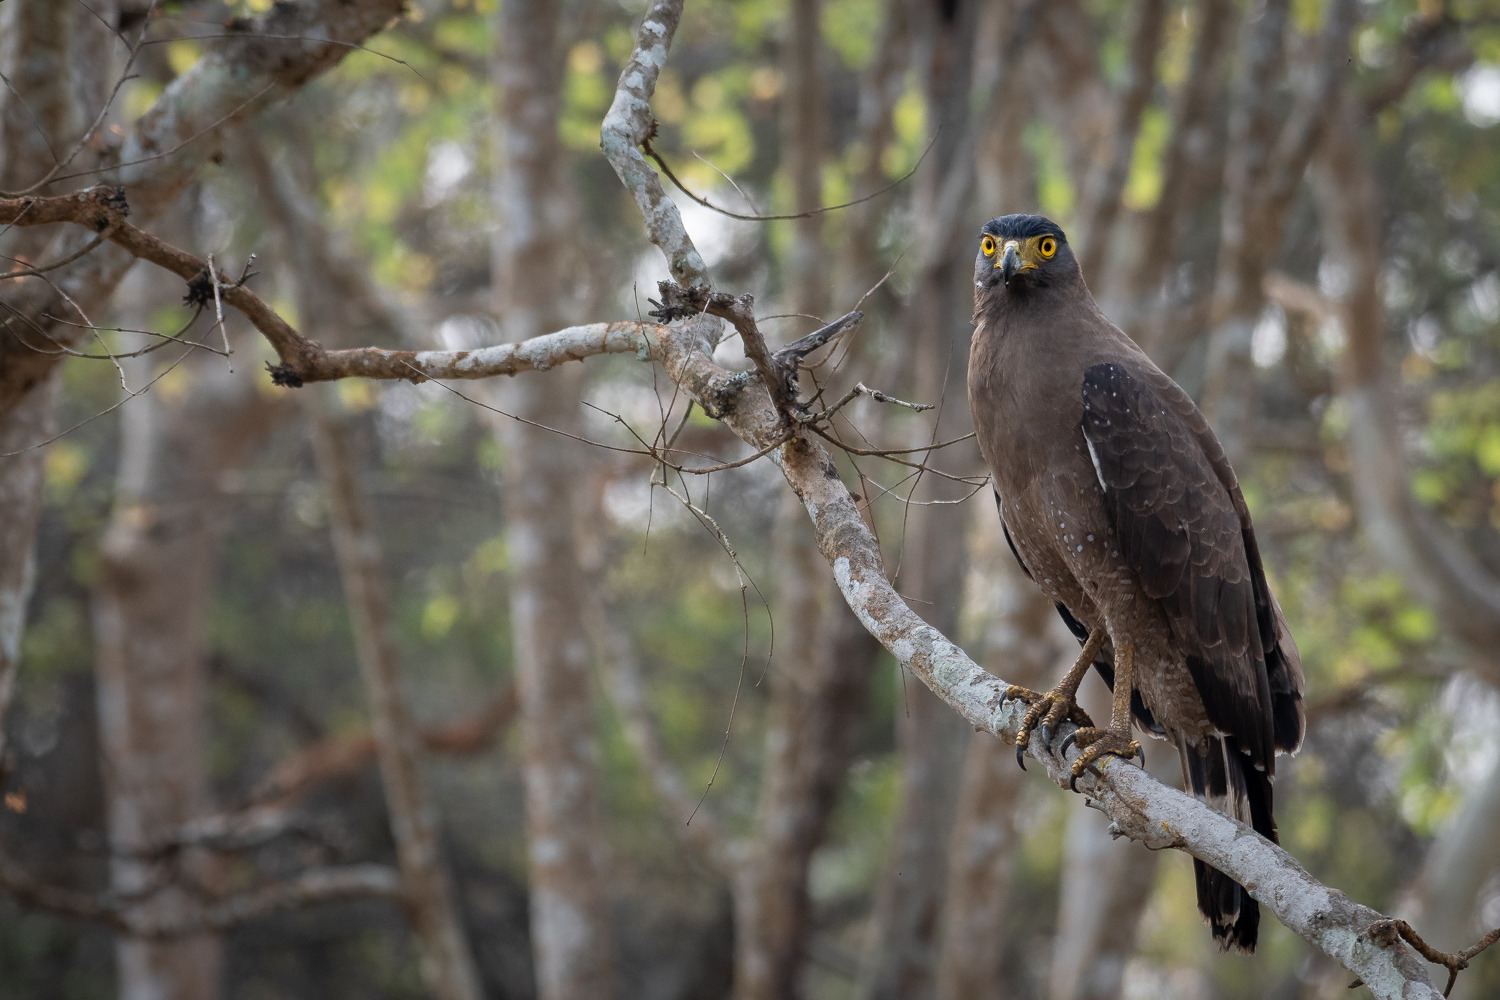 Image: Stare of an eagle. The Nikon D500 captures the details perfectly. Exif: 1/400s, f/5.6 an ISO...